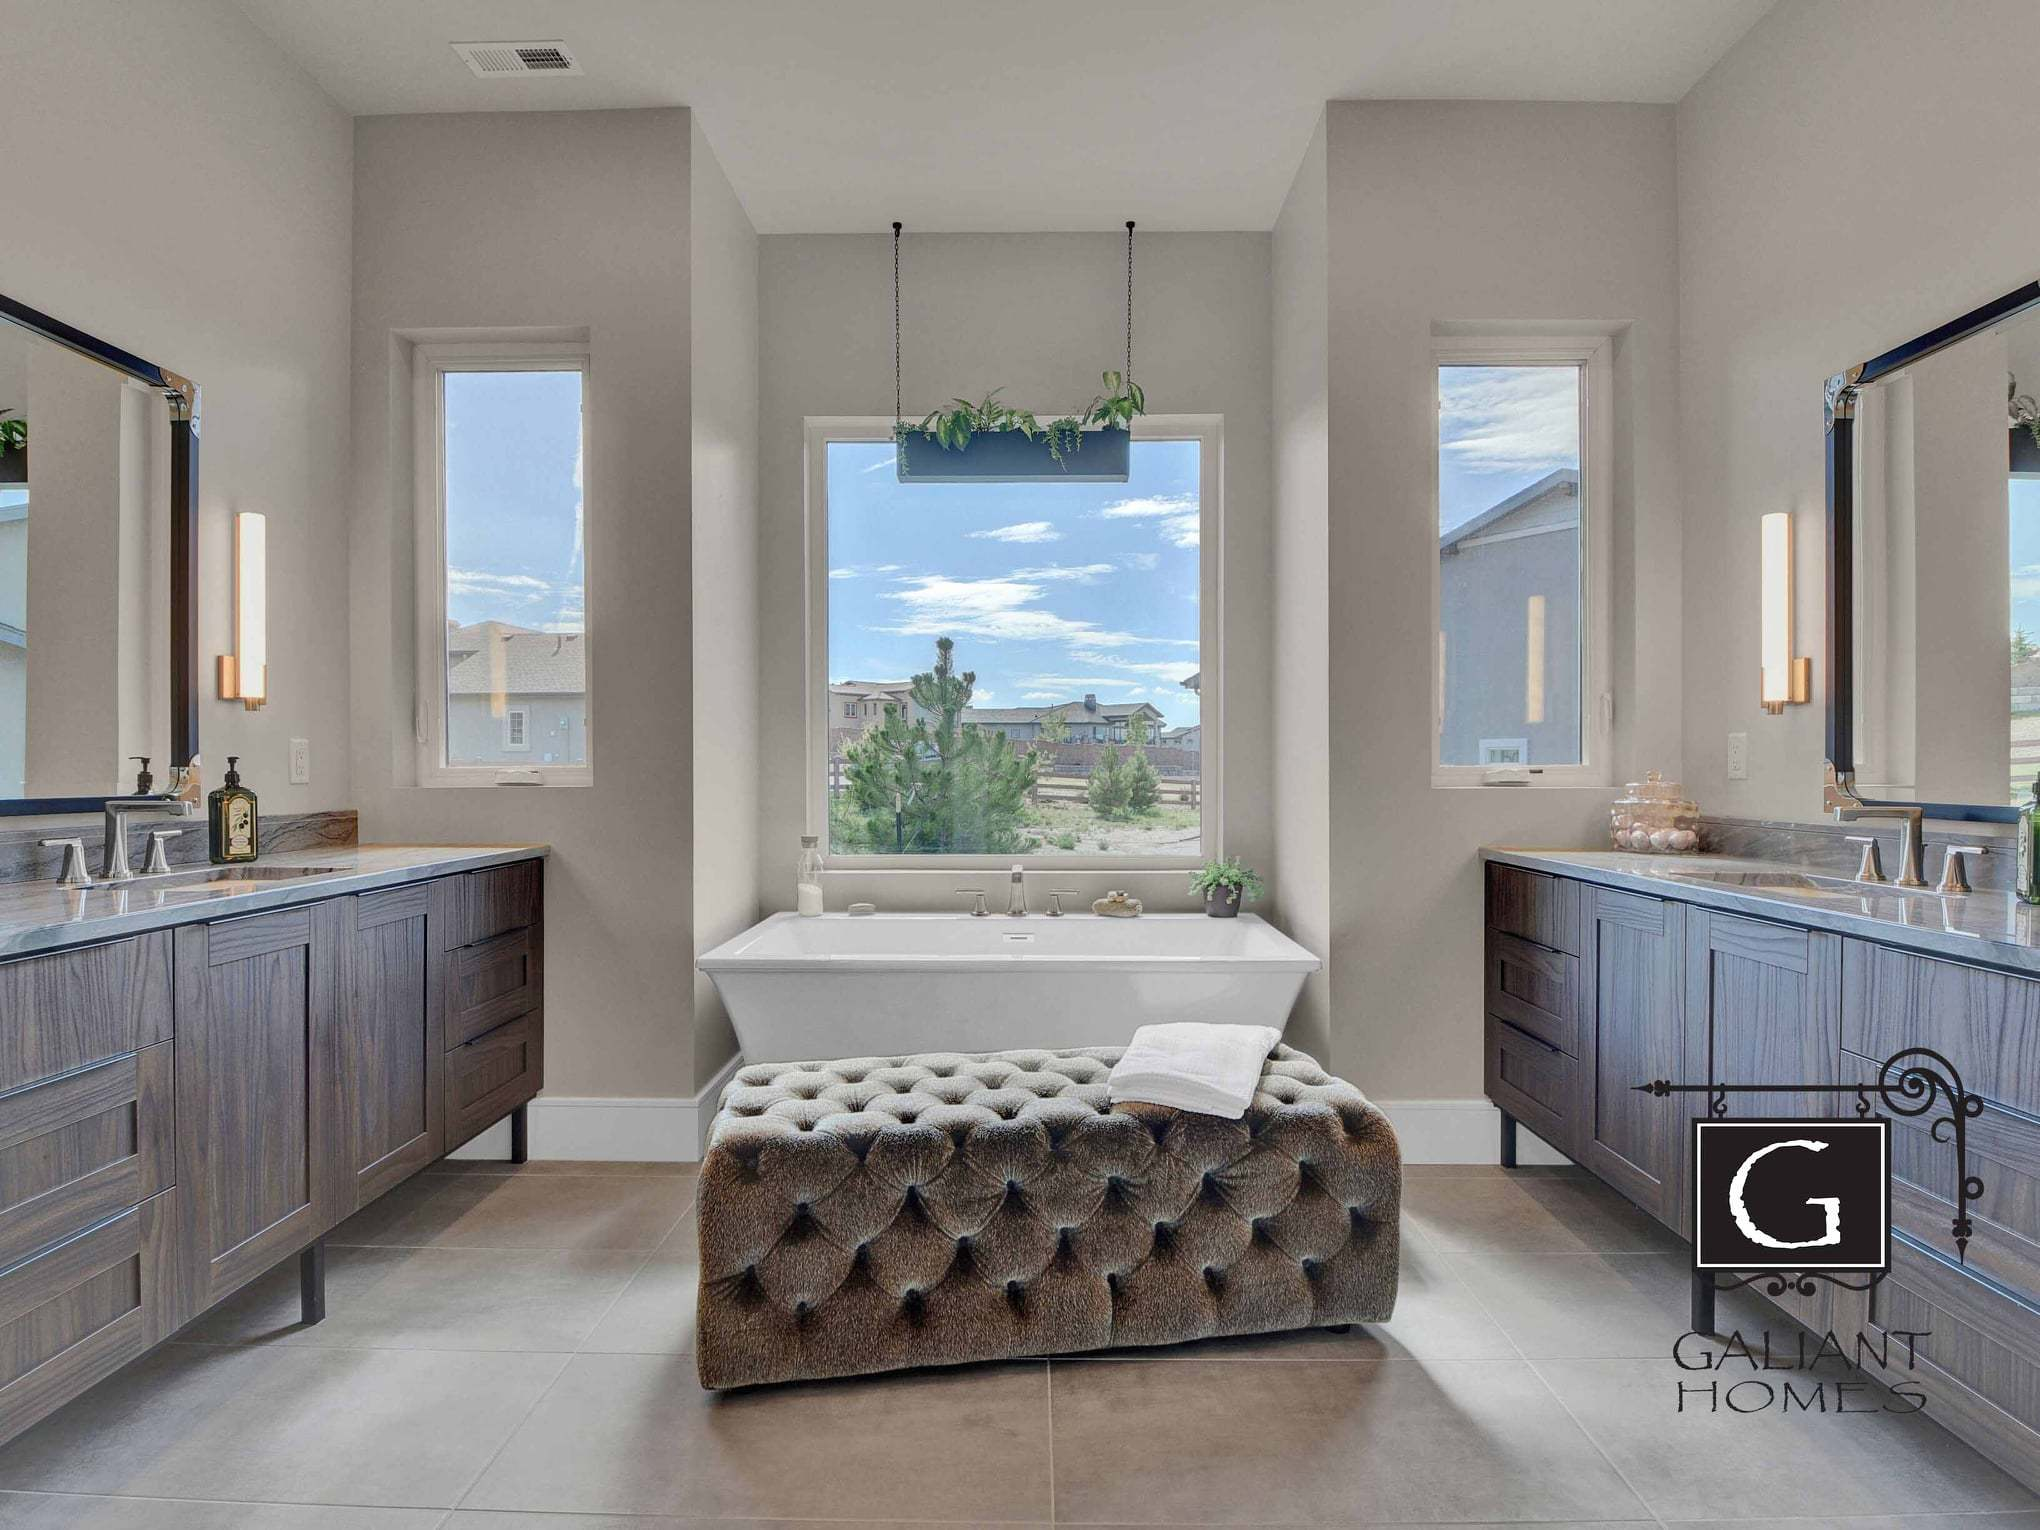 Bathroom featured in the Viking By Galiant Homes in Colorado Springs, CO